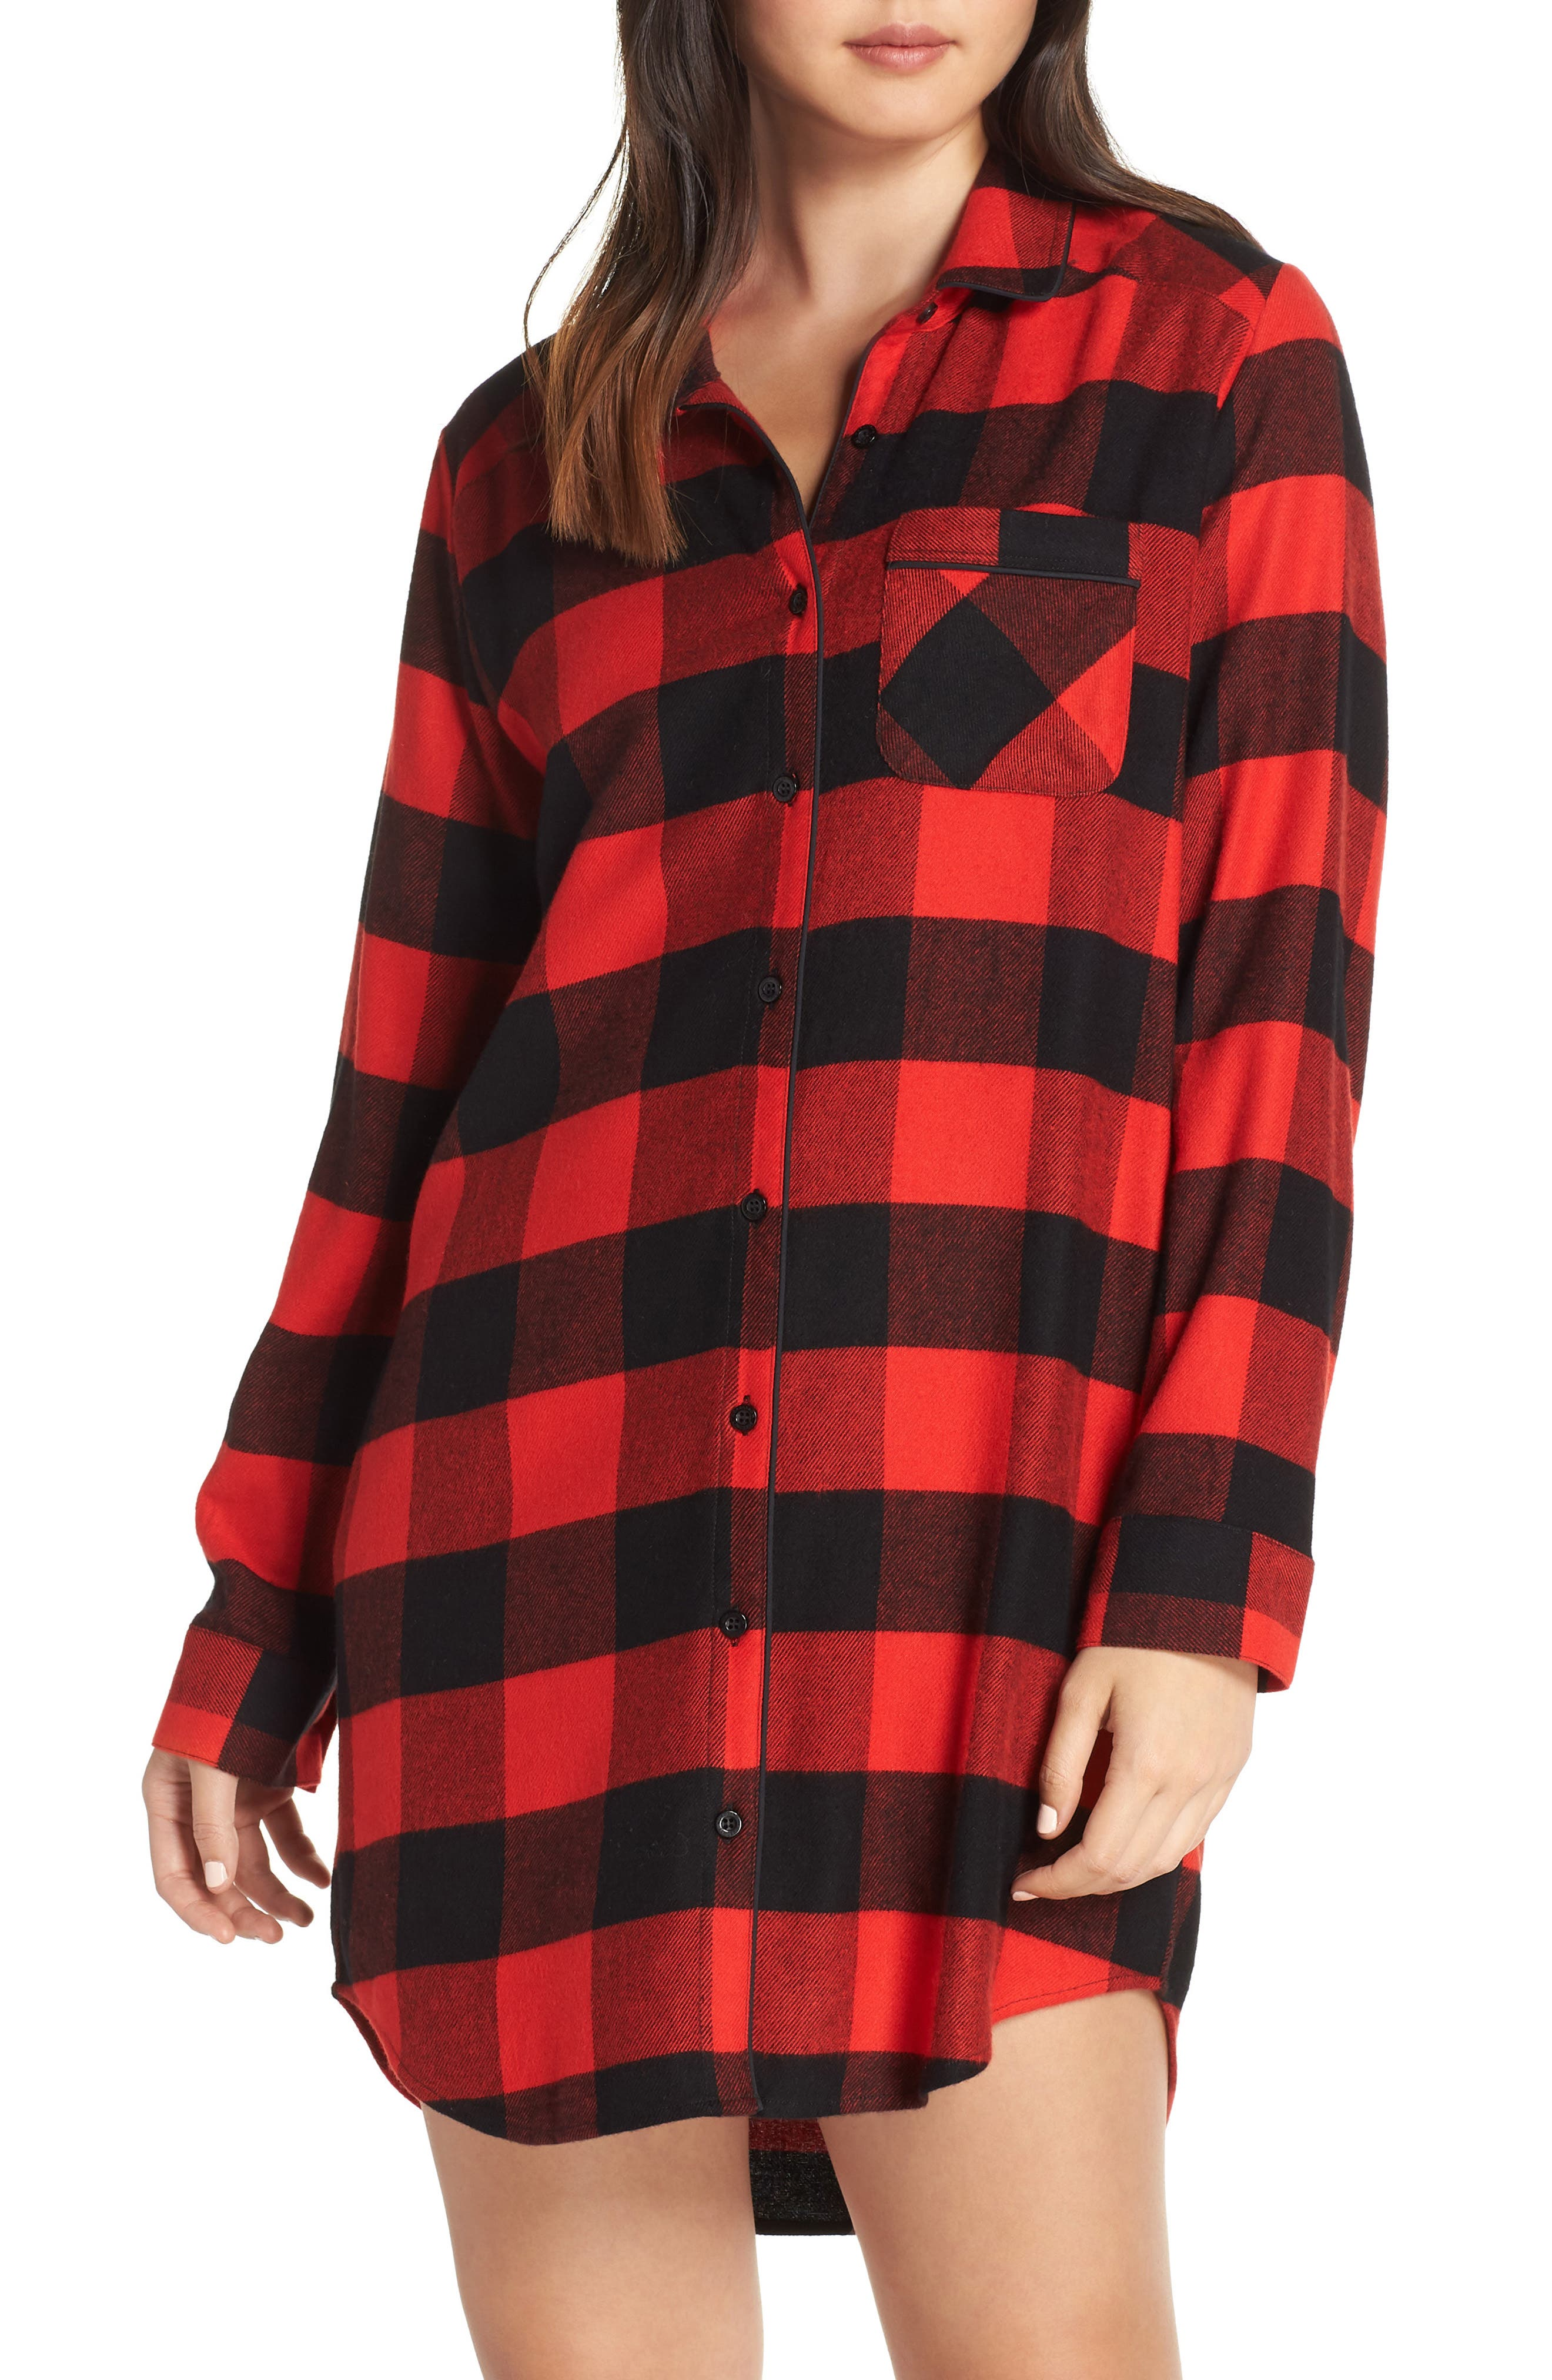 Flannel Nightshirt,                             Main thumbnail 1, color,                             RED BLOOM LARGE BUFFALO CHECK